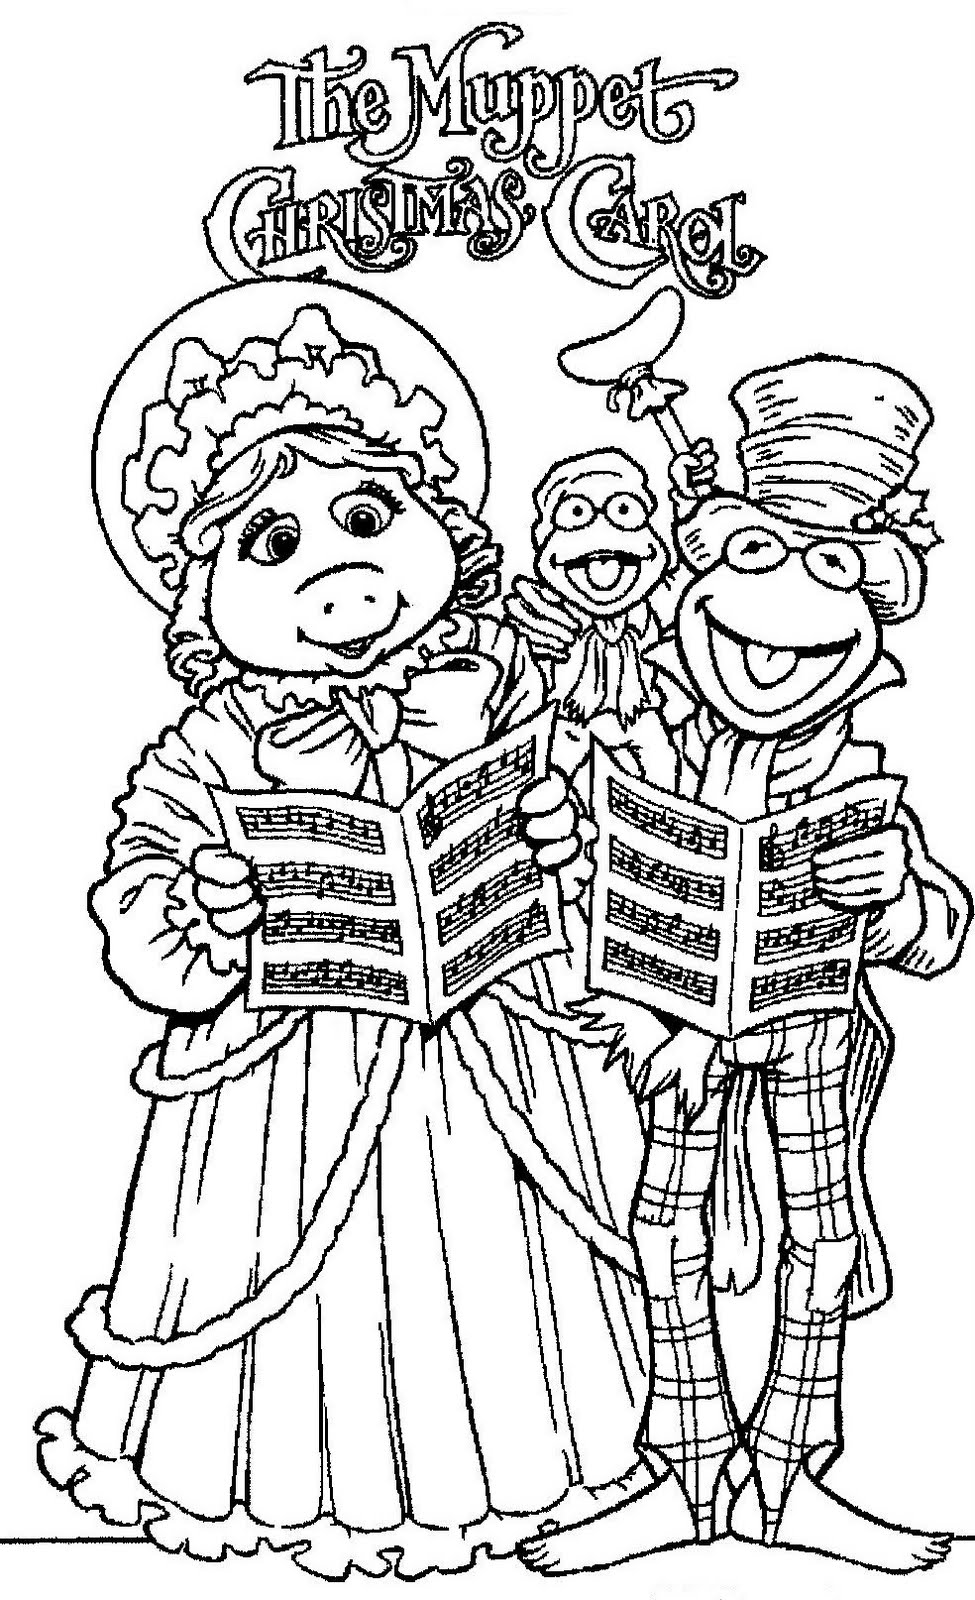 975x1600 The Muppets Drawings Coloring ~ Child Coloring